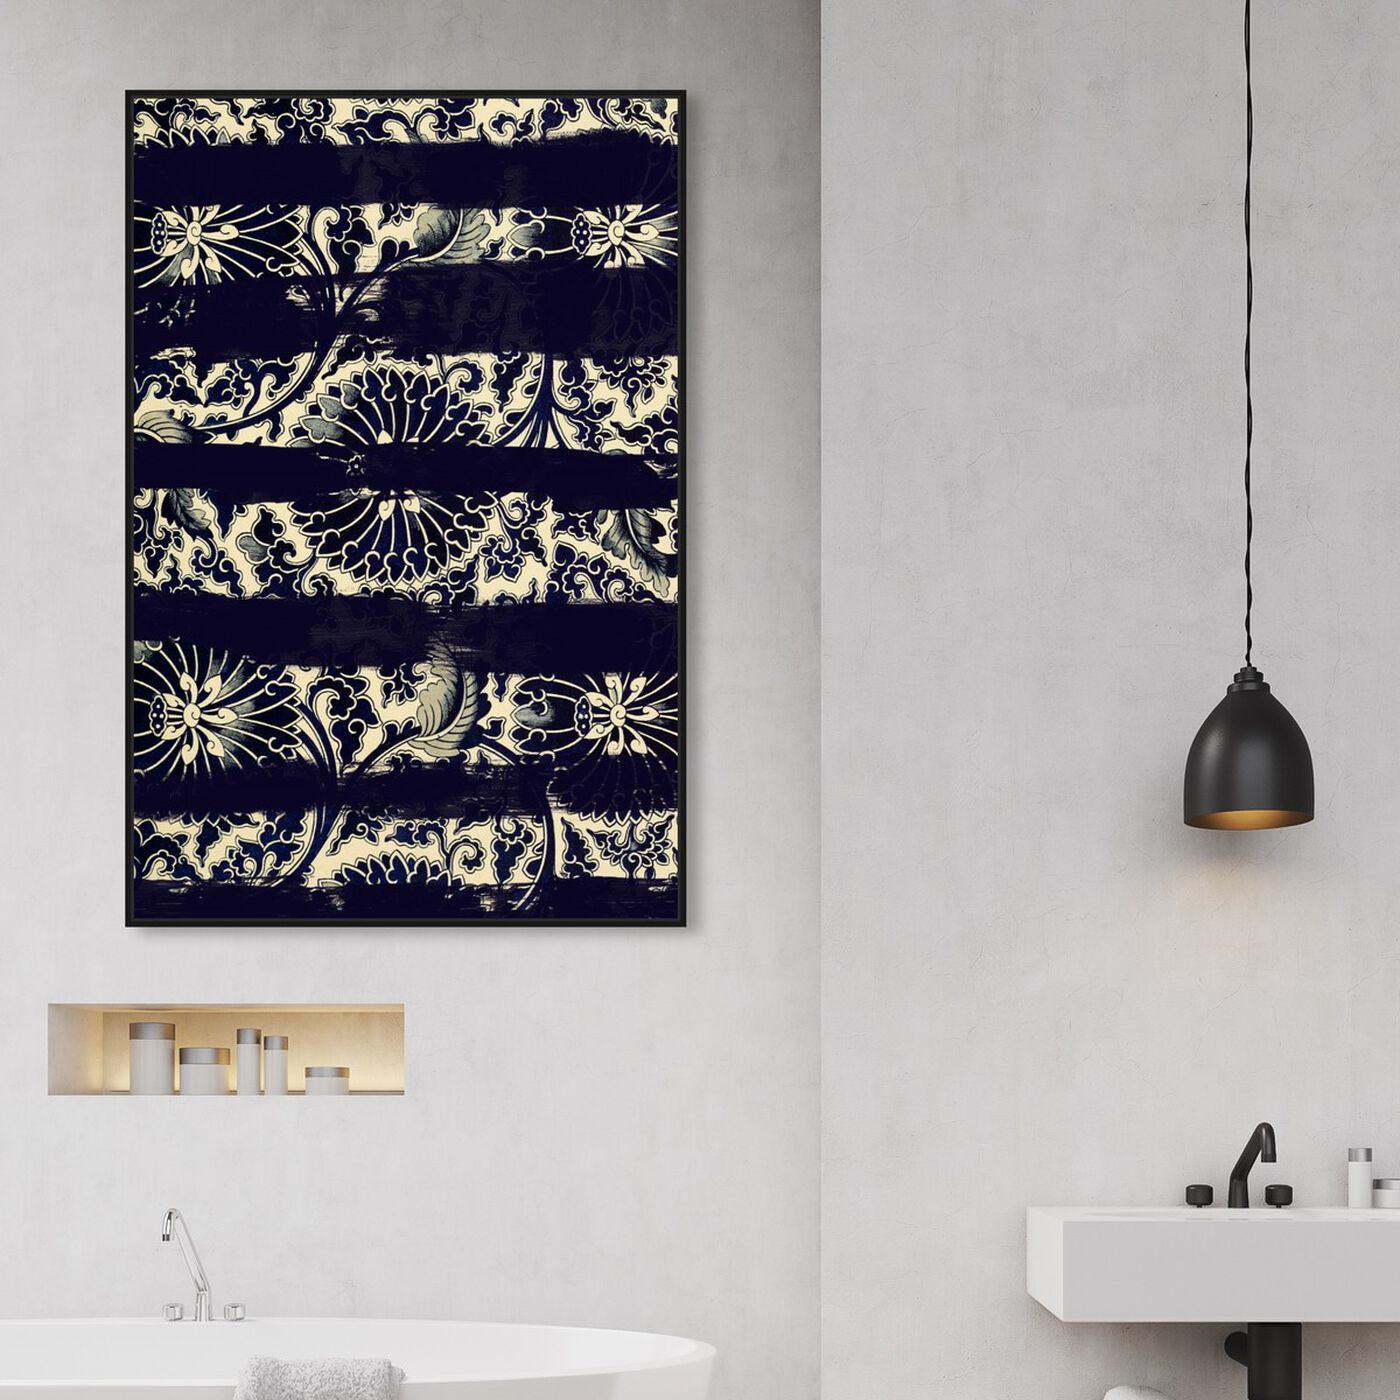 Hanging view of Vintage Strokes II featuring abstract and patterns art.